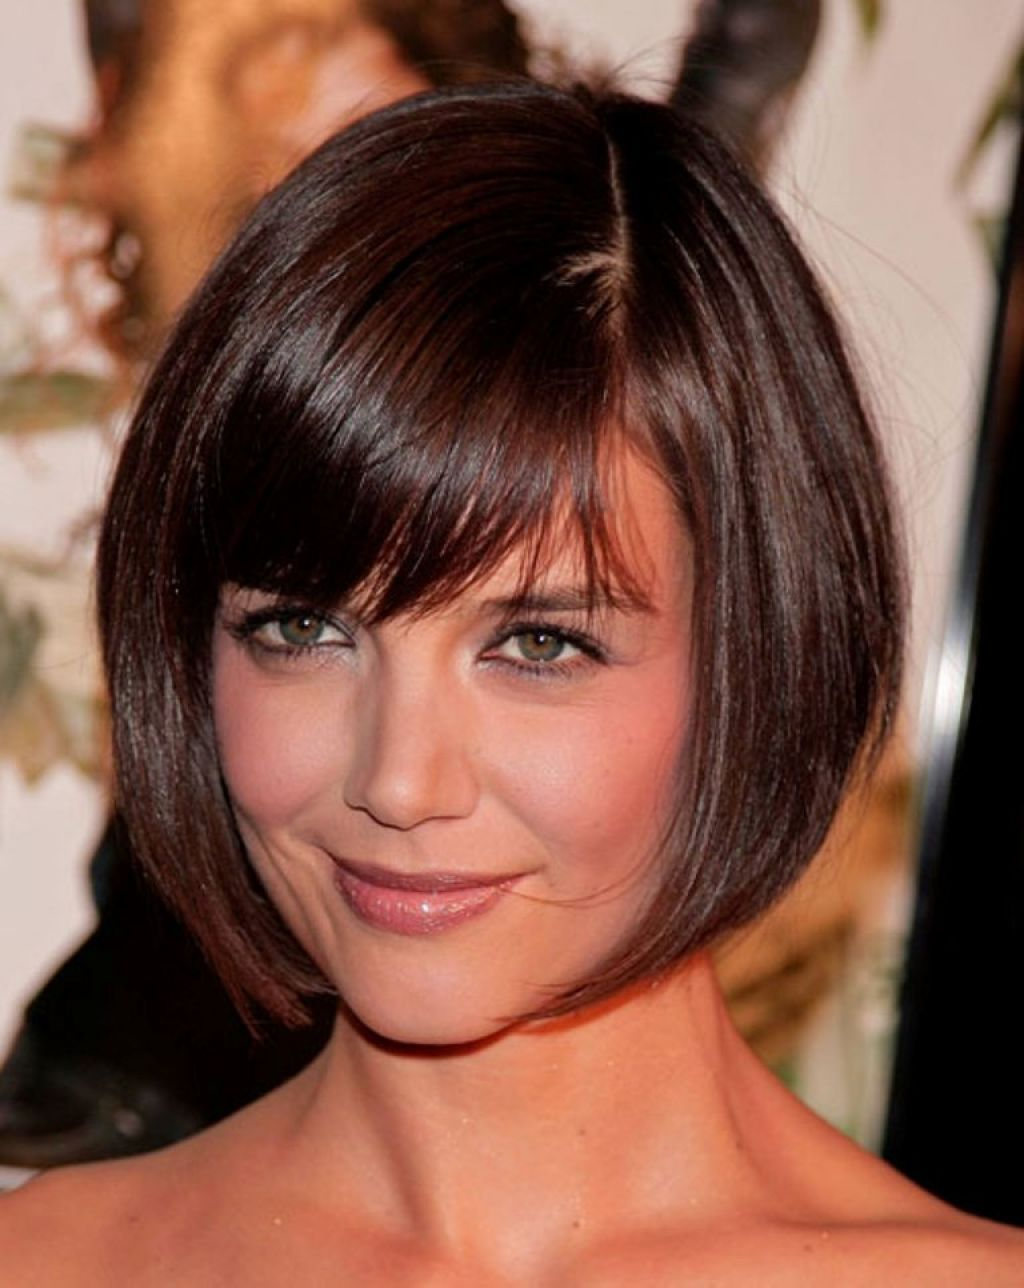 Square Face Bangs Hairstyle Short Hairstyles For Thick Hair Square Face Hair Pinterest